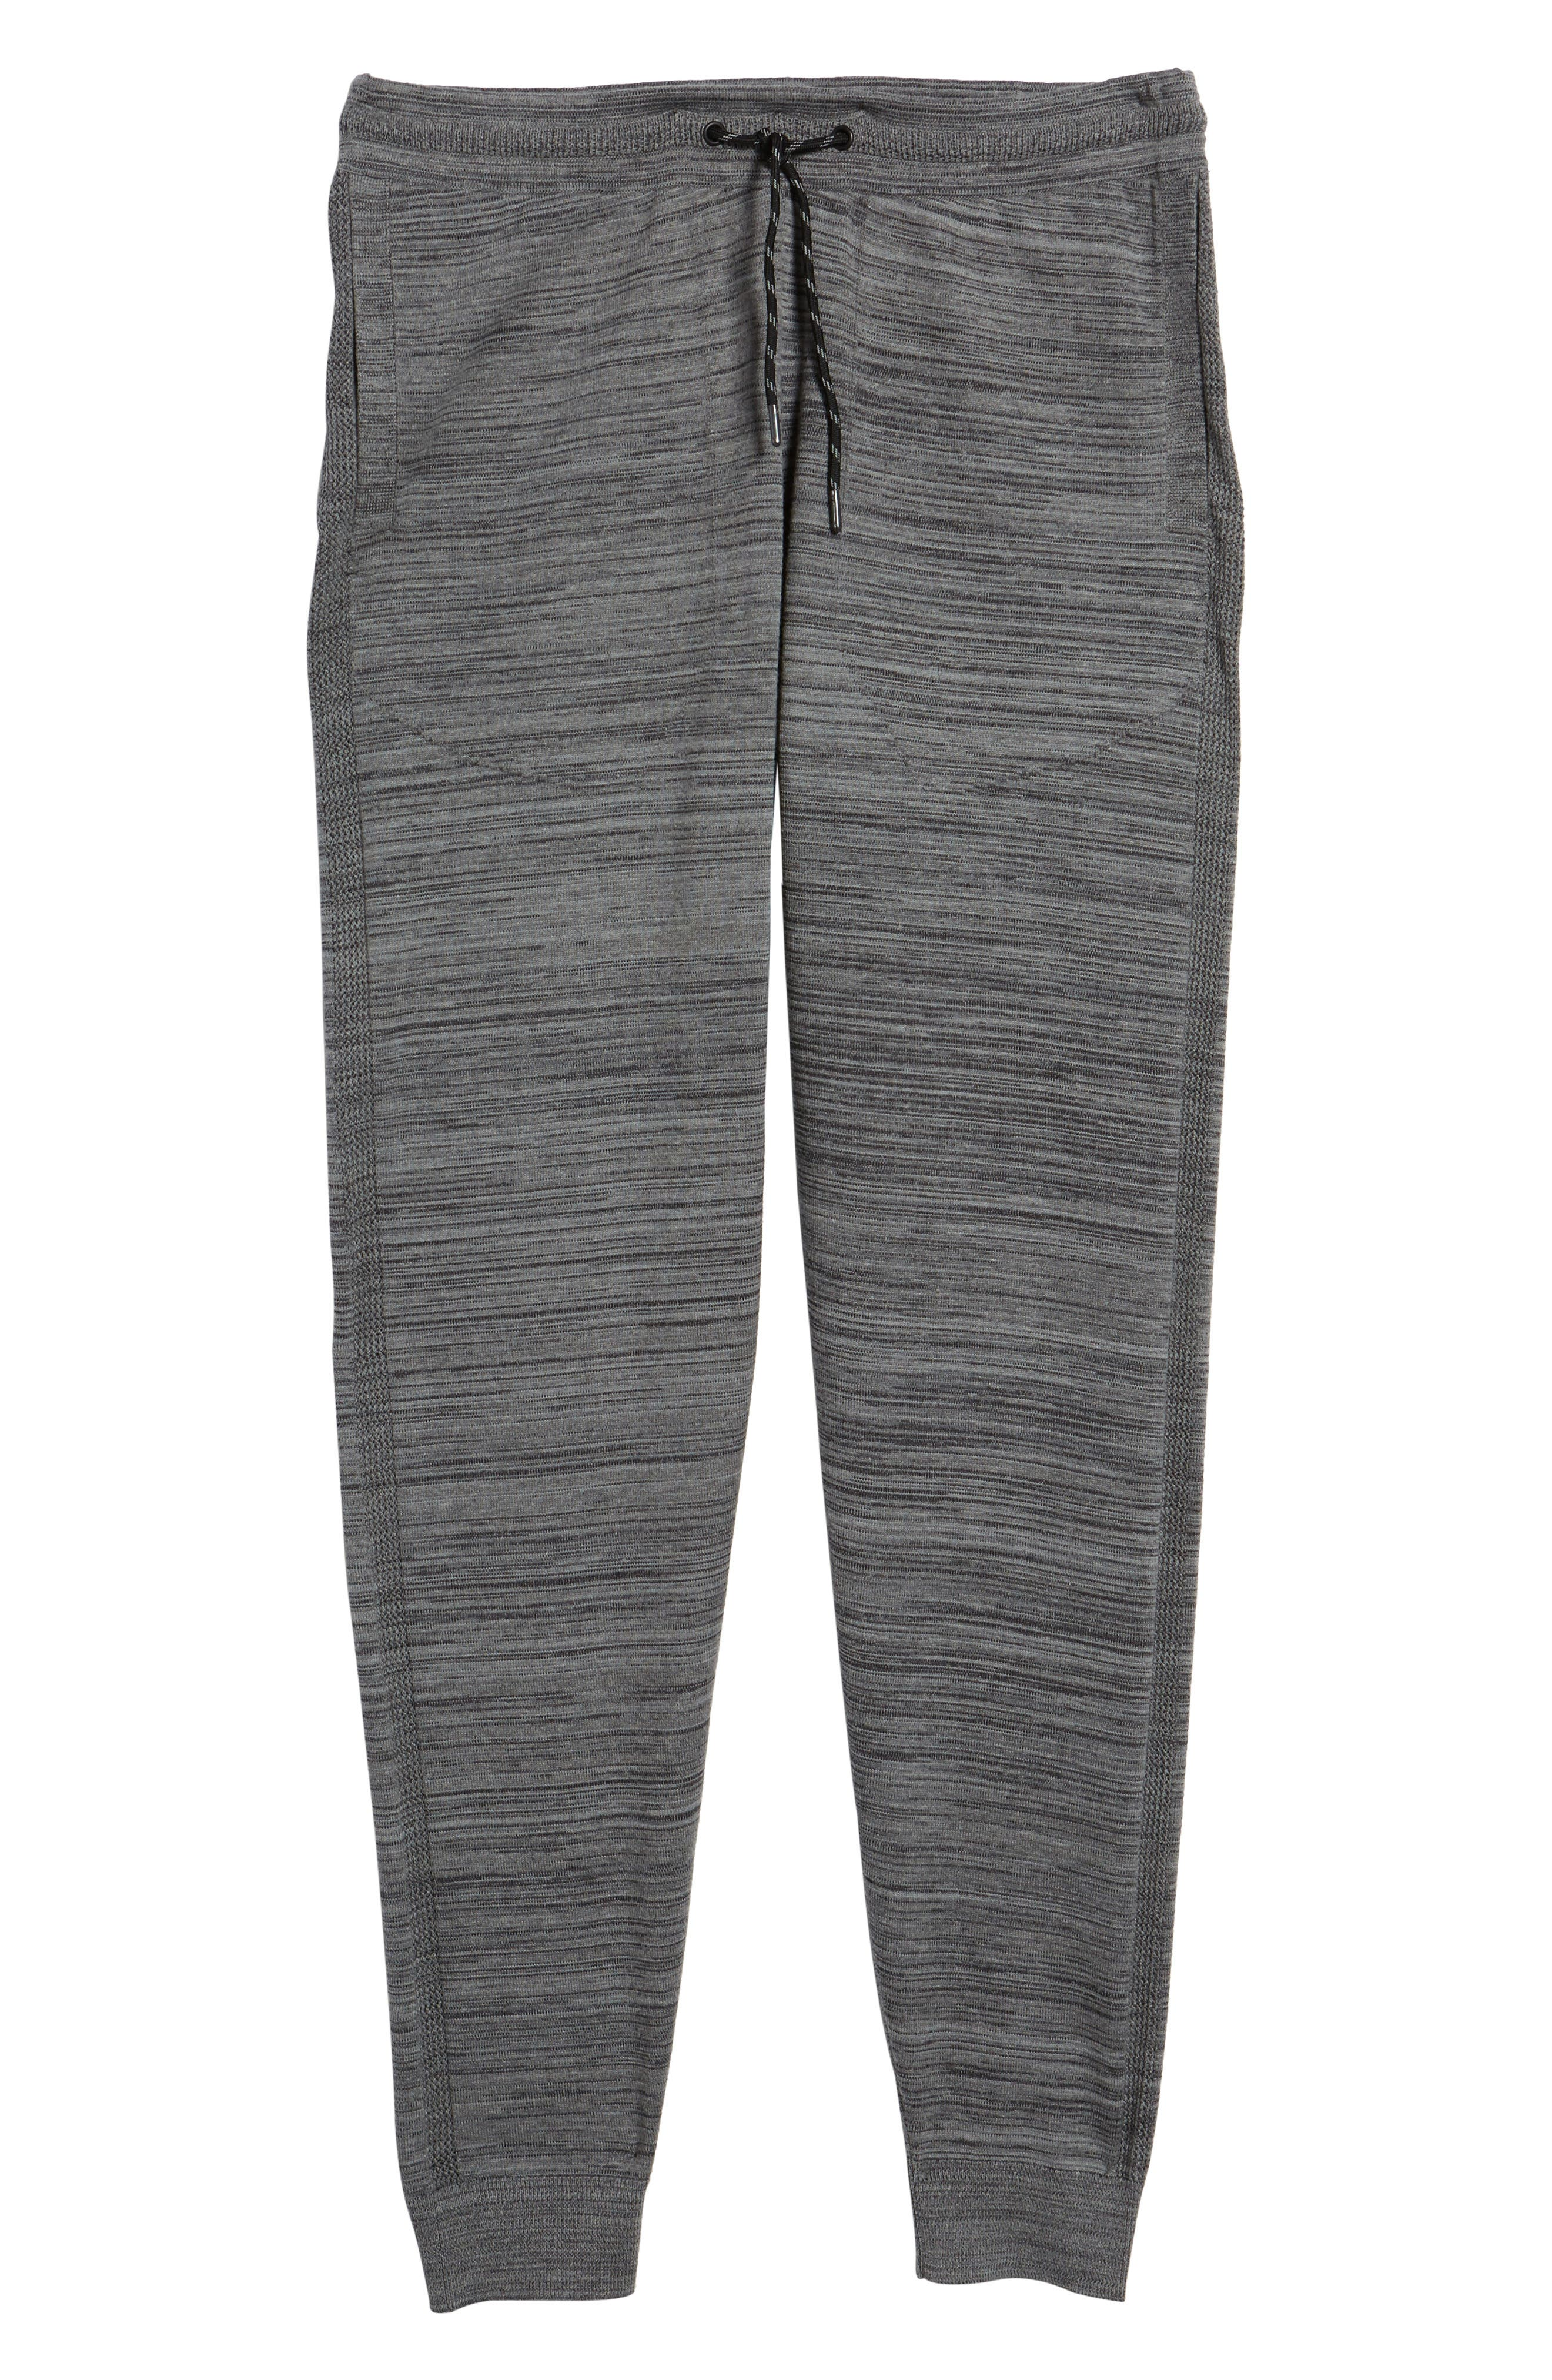 Tech Sweater Knit Jogger Pants,                             Alternate thumbnail 6, color,                             Grey Obsidian Spacedye